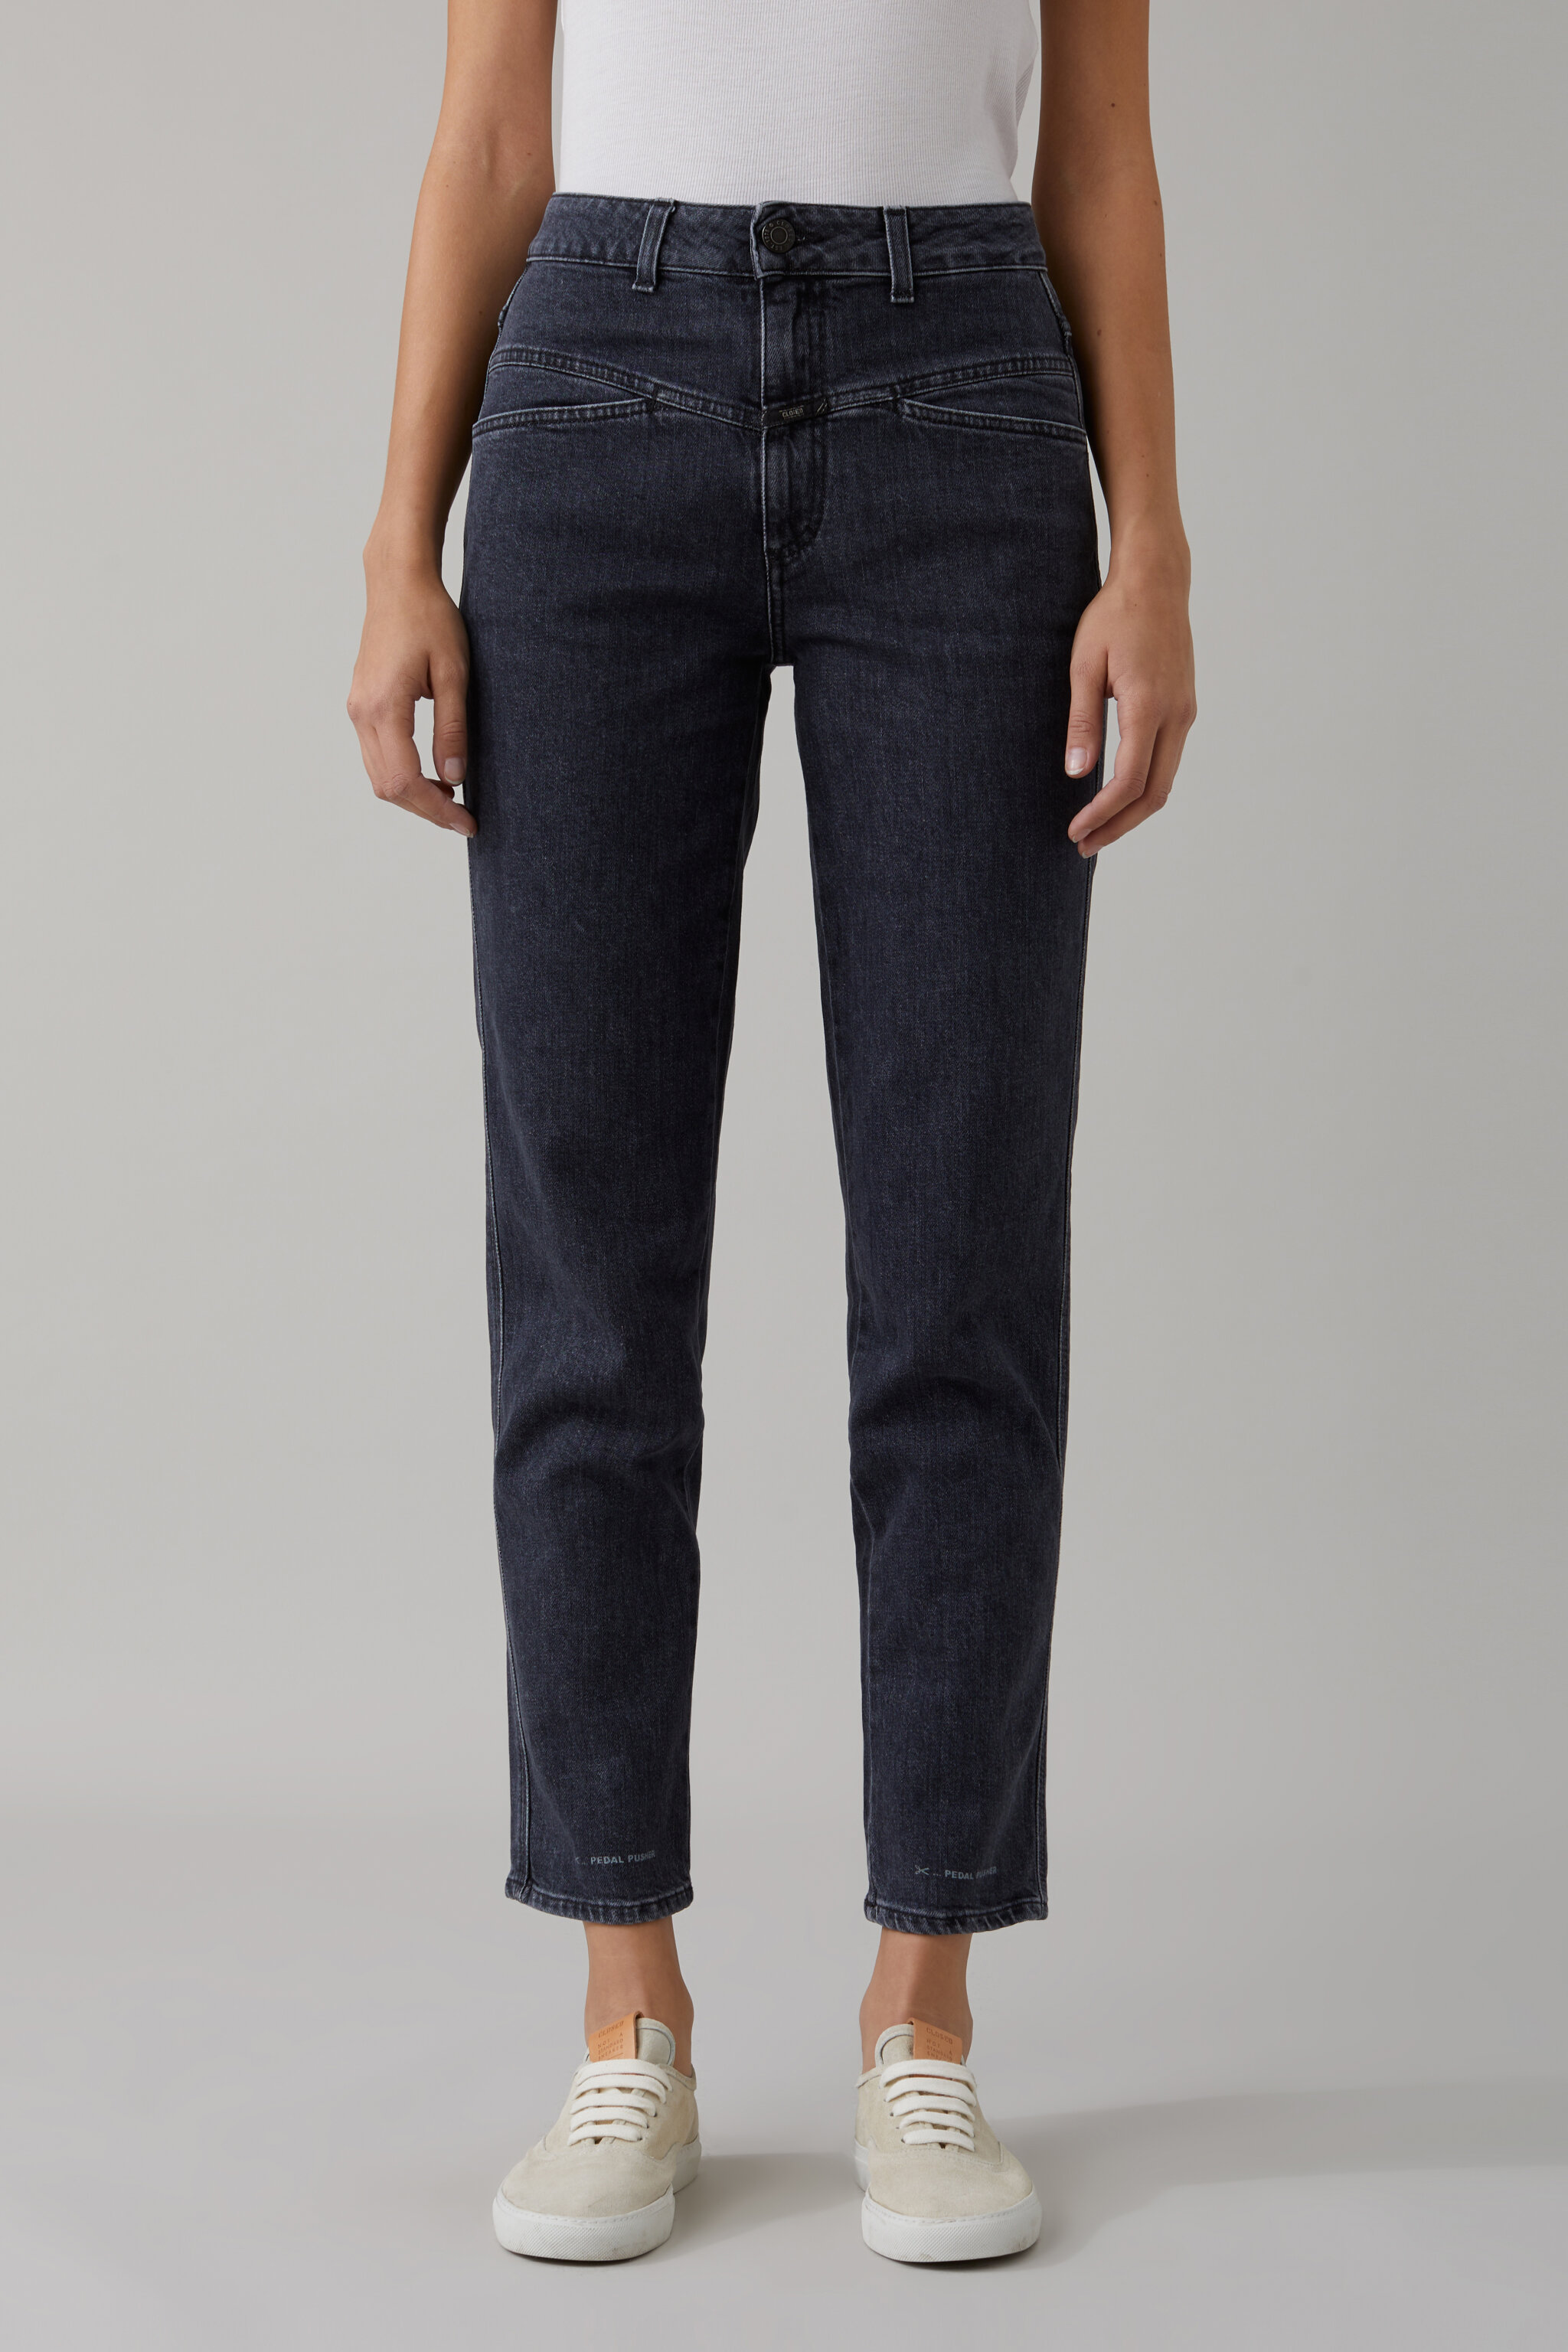 - Damen CLOSED Pedal Pusher Authentic Black Stretch Denim | 4054736619391